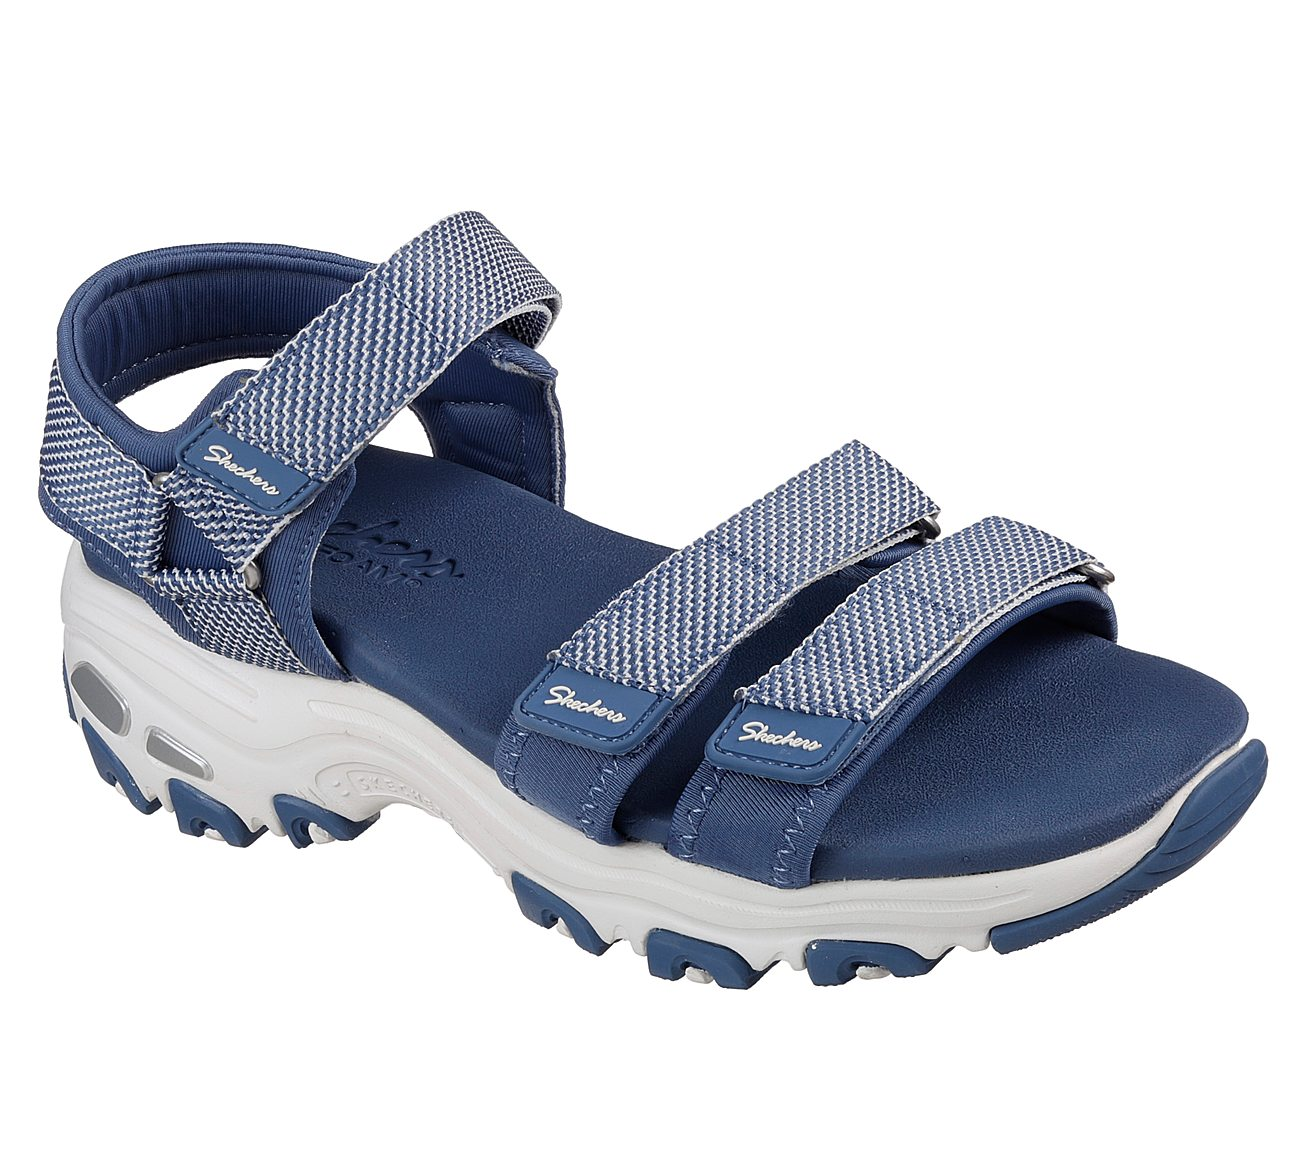 07c5e489e4fd Buy SKECHERS D Lites - Cross Breeze Skechers D Lites Shoes only £47.00